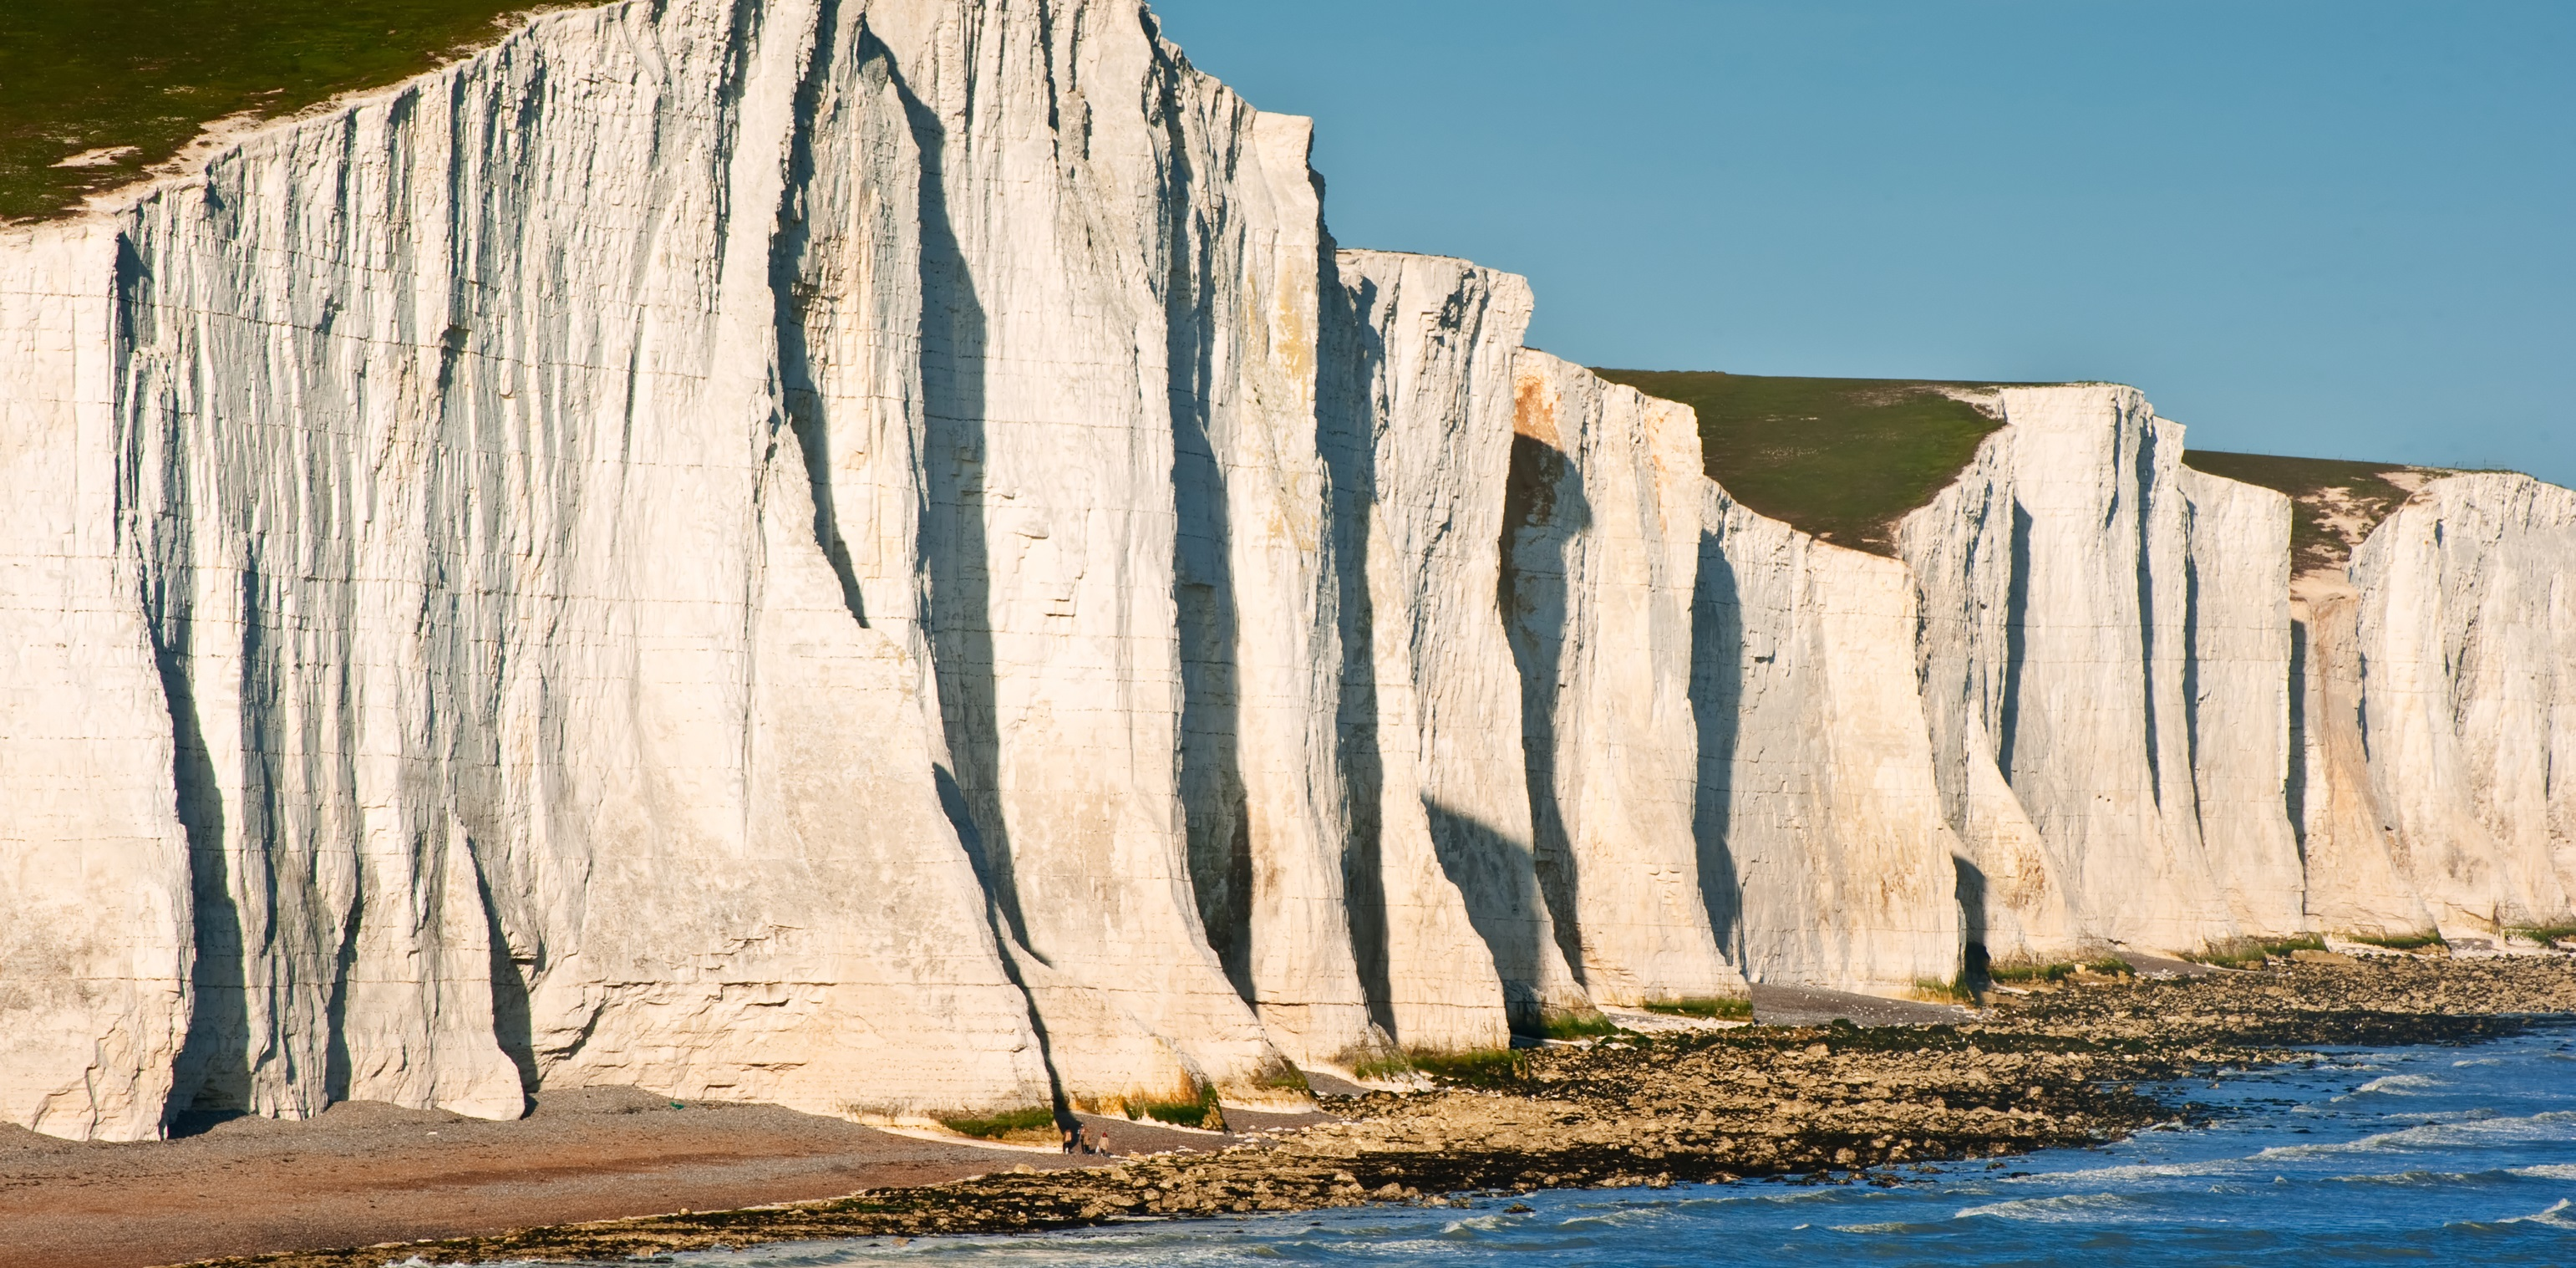 White cliffs like these on the south coast of England, are, in part, the result of millions of years of 'marine snow' accumulation, forming carbon sinks.